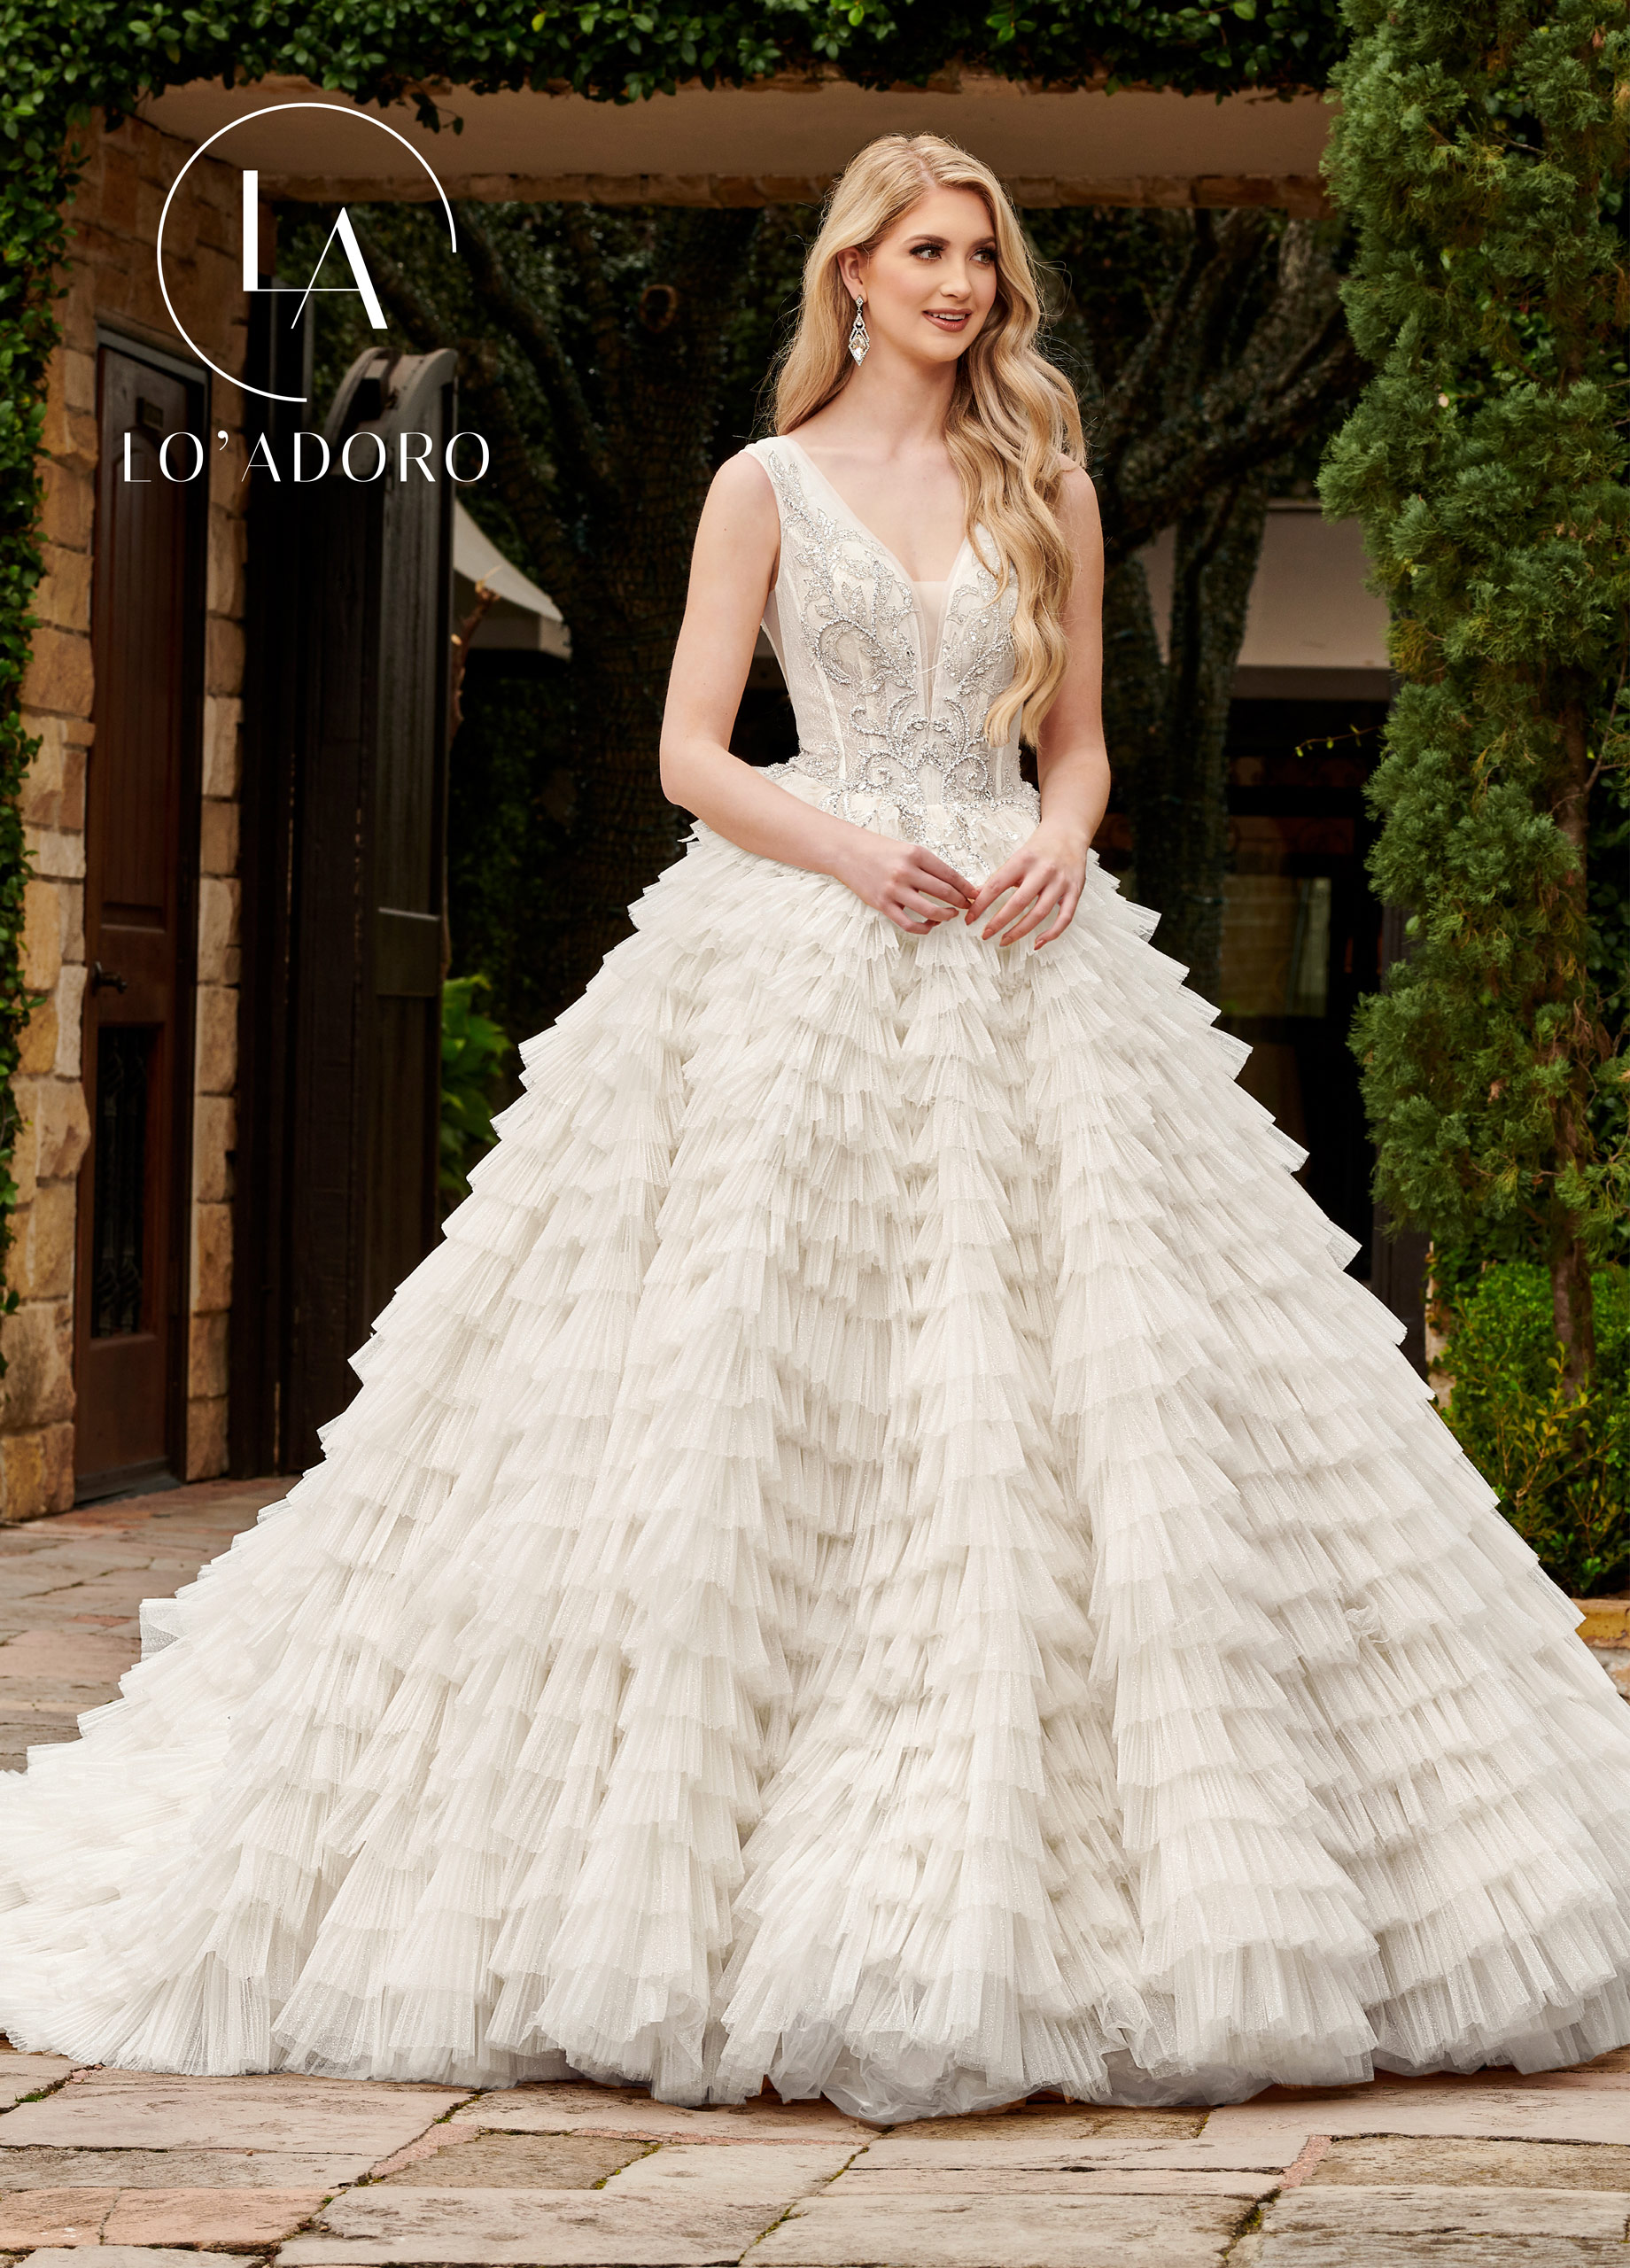 V-Neck Ball Gowns Lo' Adoro Bridal in Ivory Color